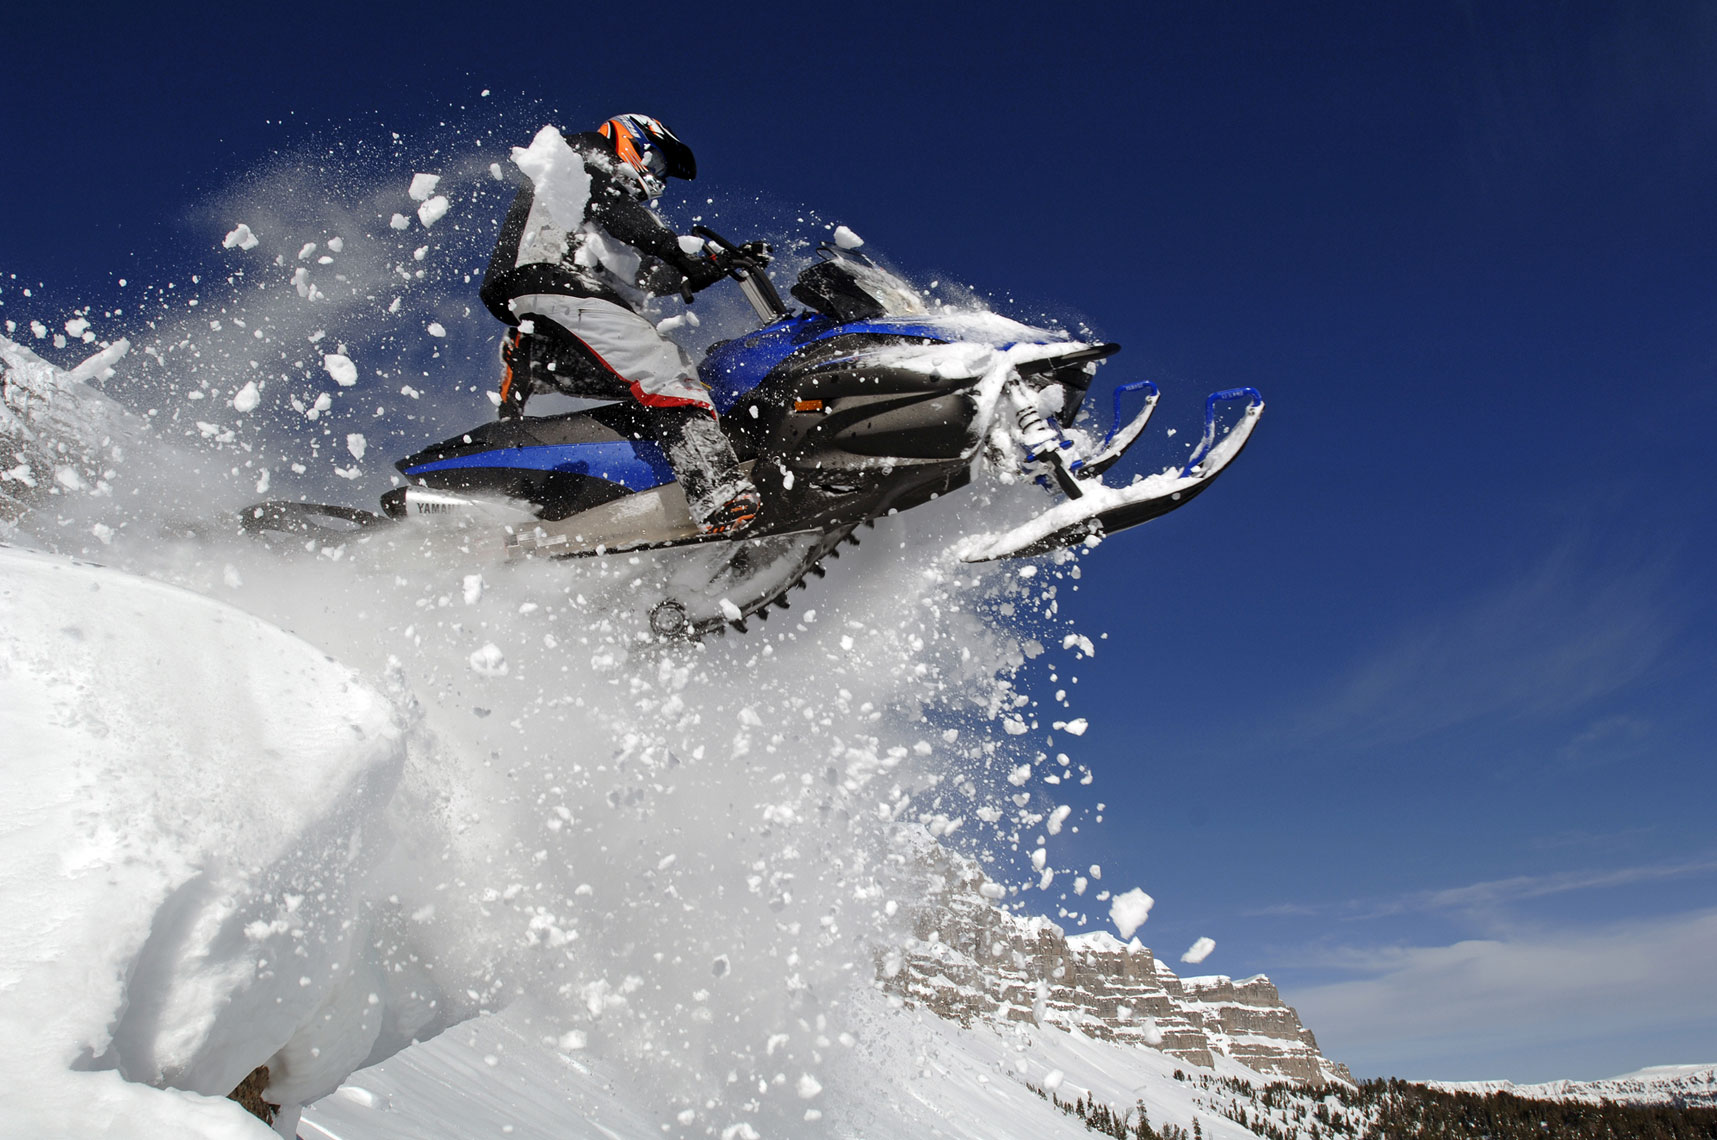 Snowmobile-Photography-by-Kort-Duce-014